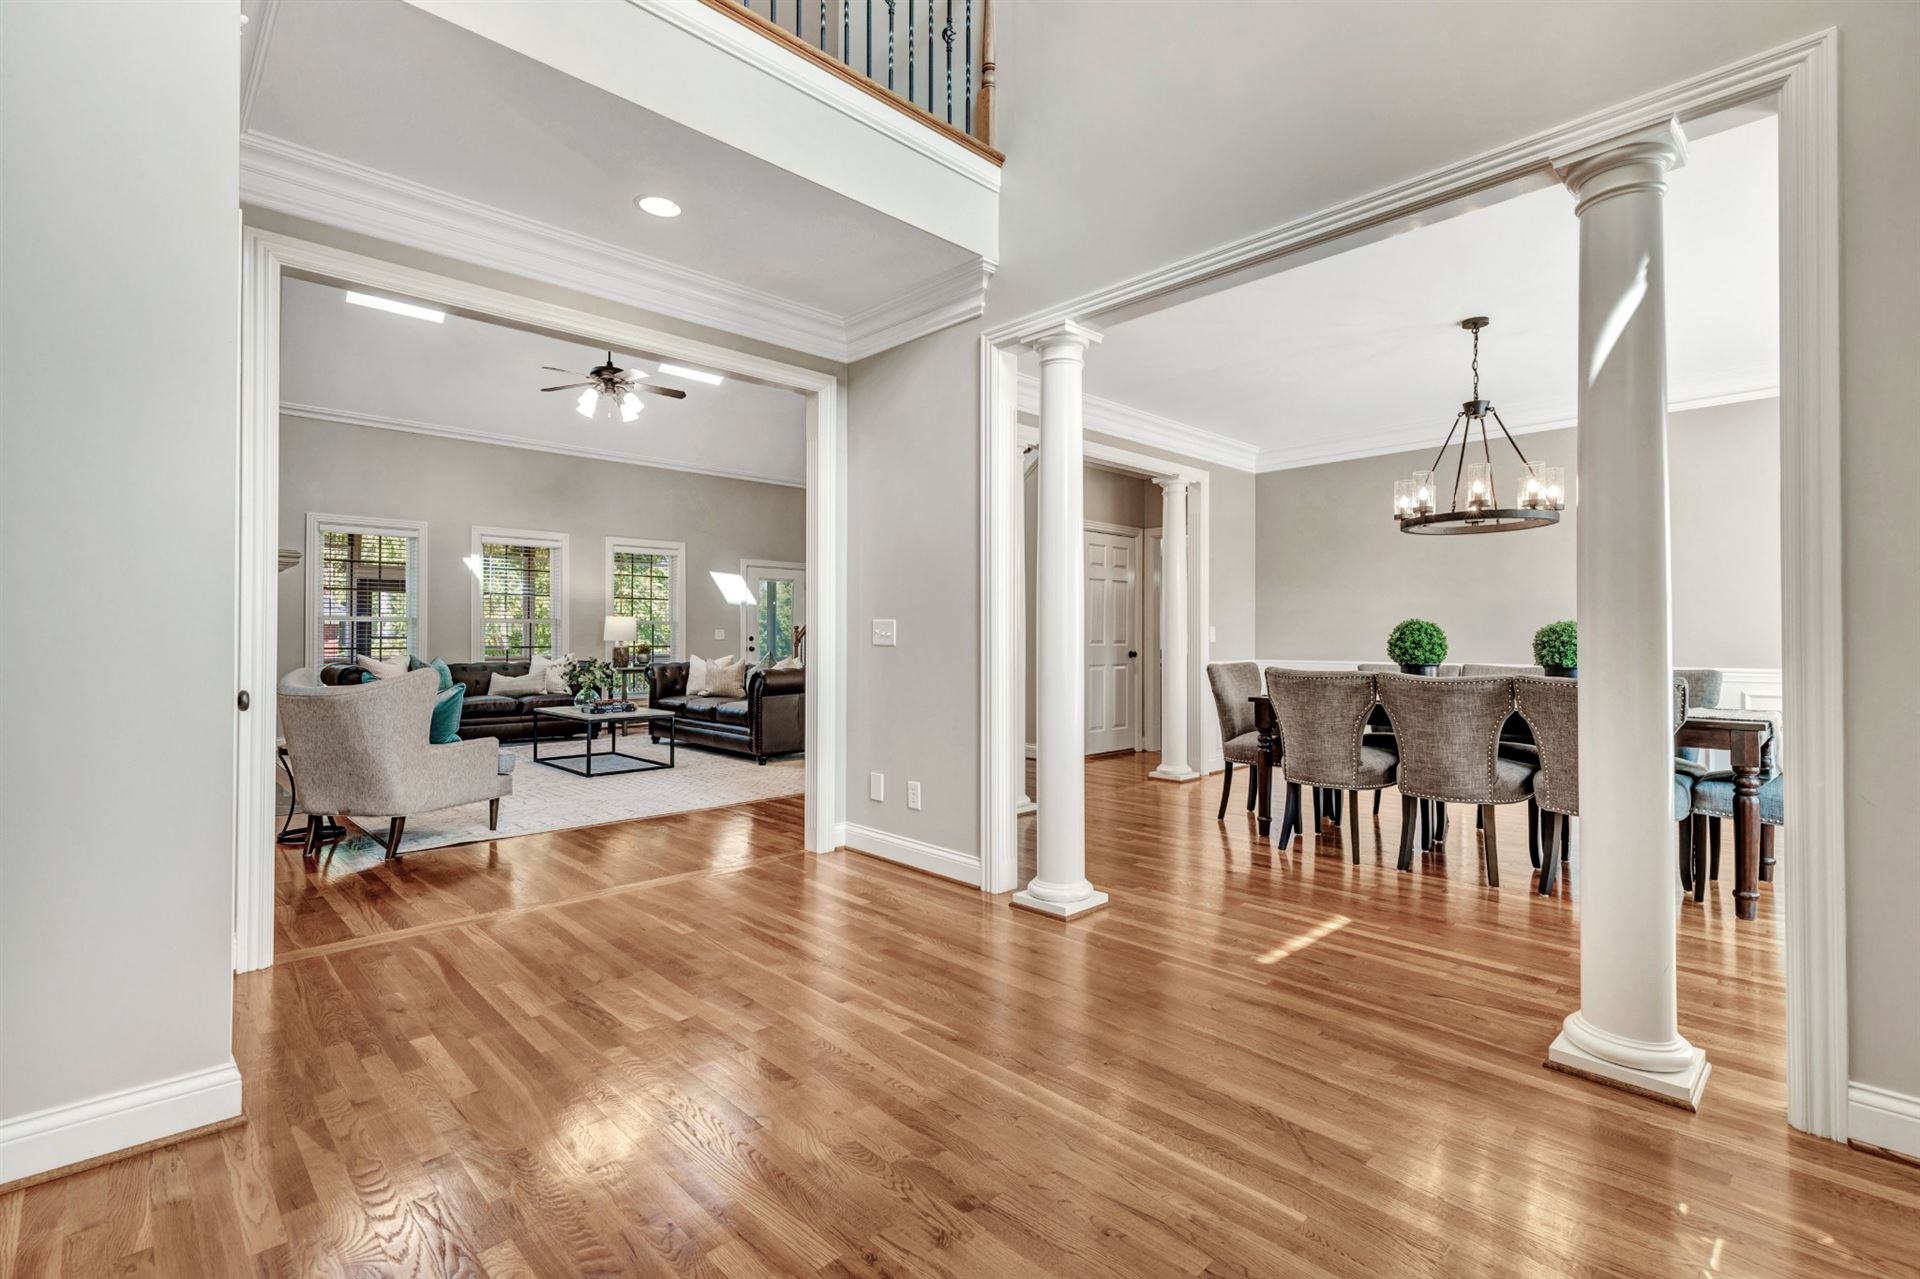 Photo of 1221 Devens Dr, Brentwood, TN 37027 (MLS # 2285849)